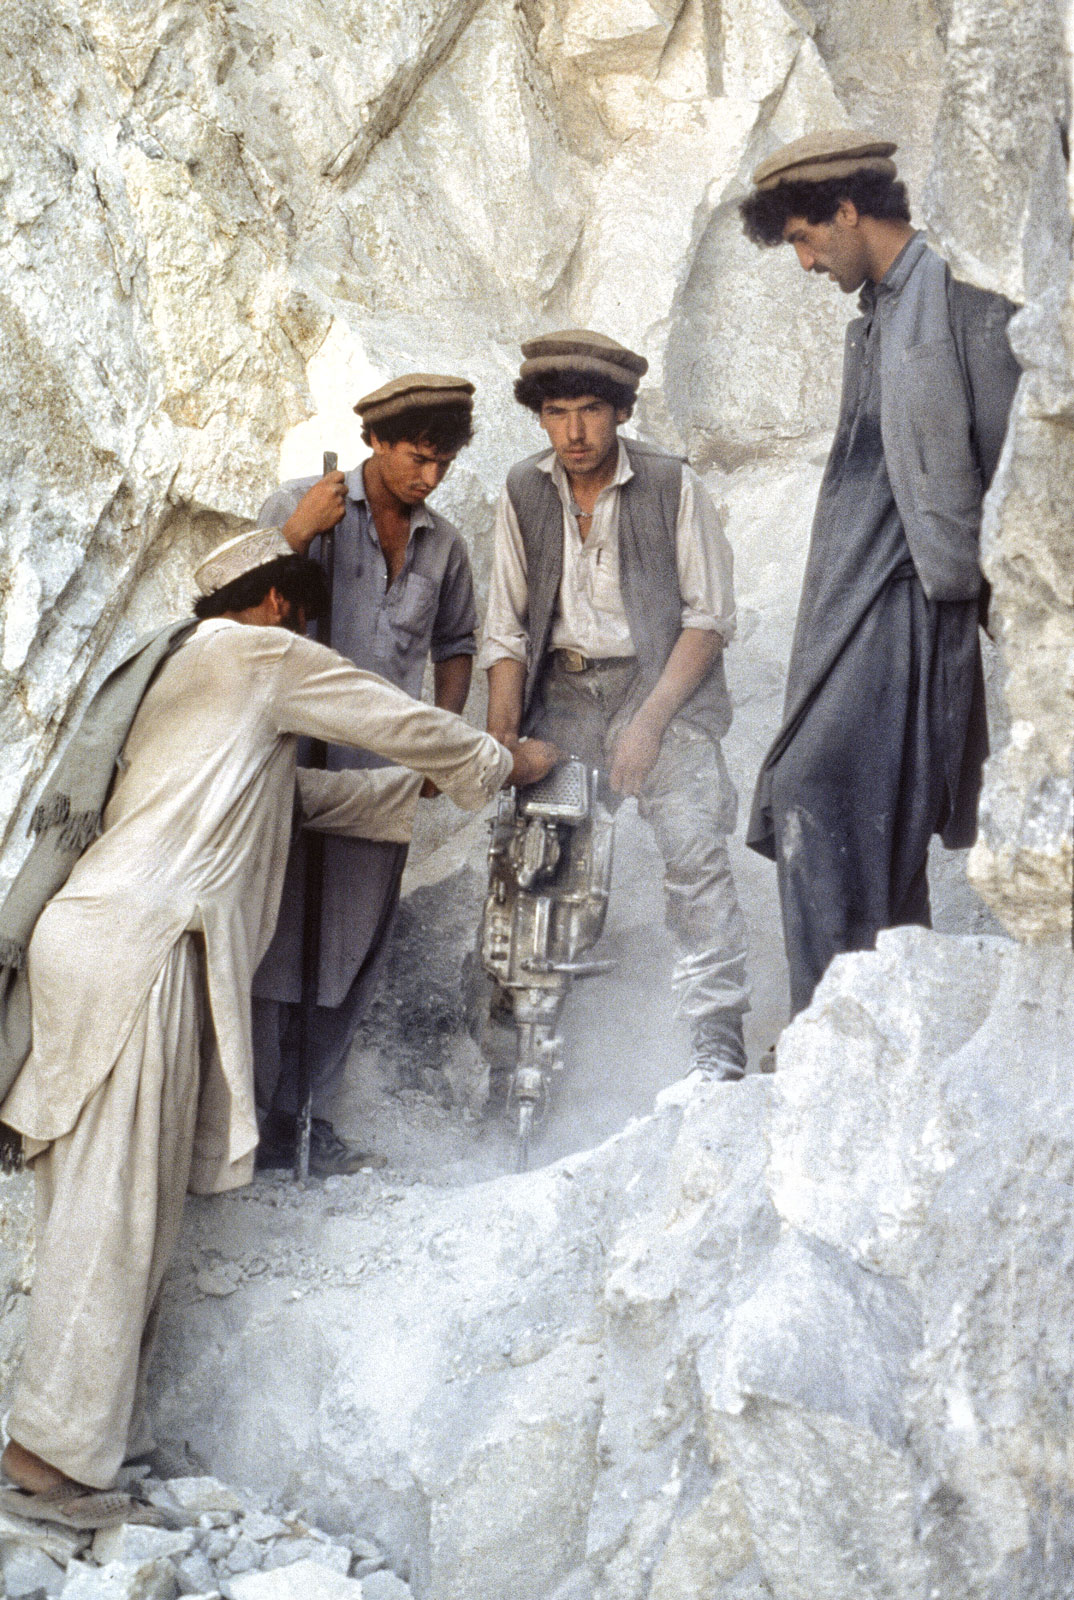 Afghan miners drilling the limestone for rubies at Jegdalek, Afghanistan. (Photo: Gary Bowersox)